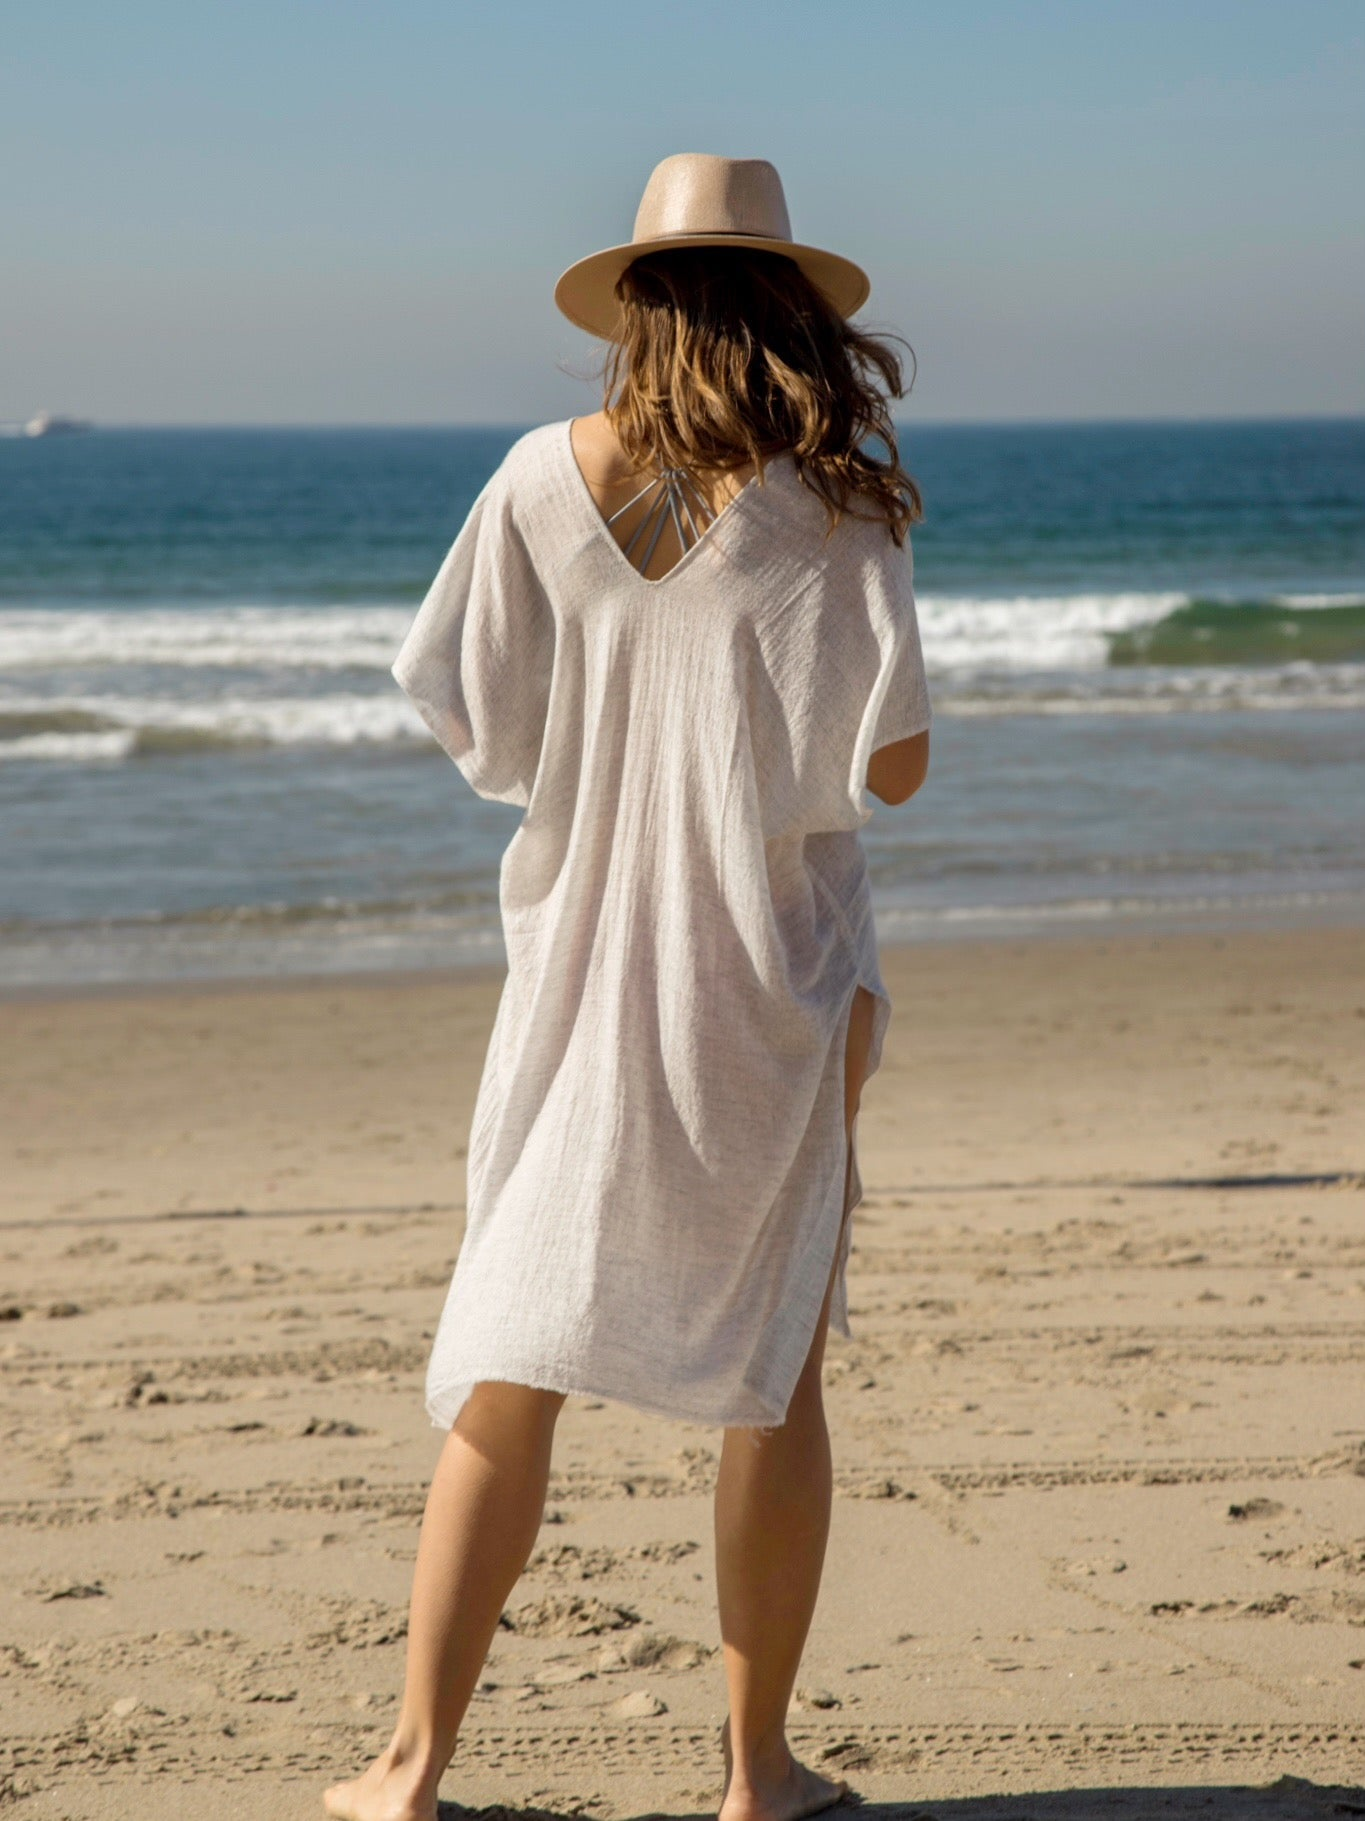 Simplicity | Light Wool Tunic | Her